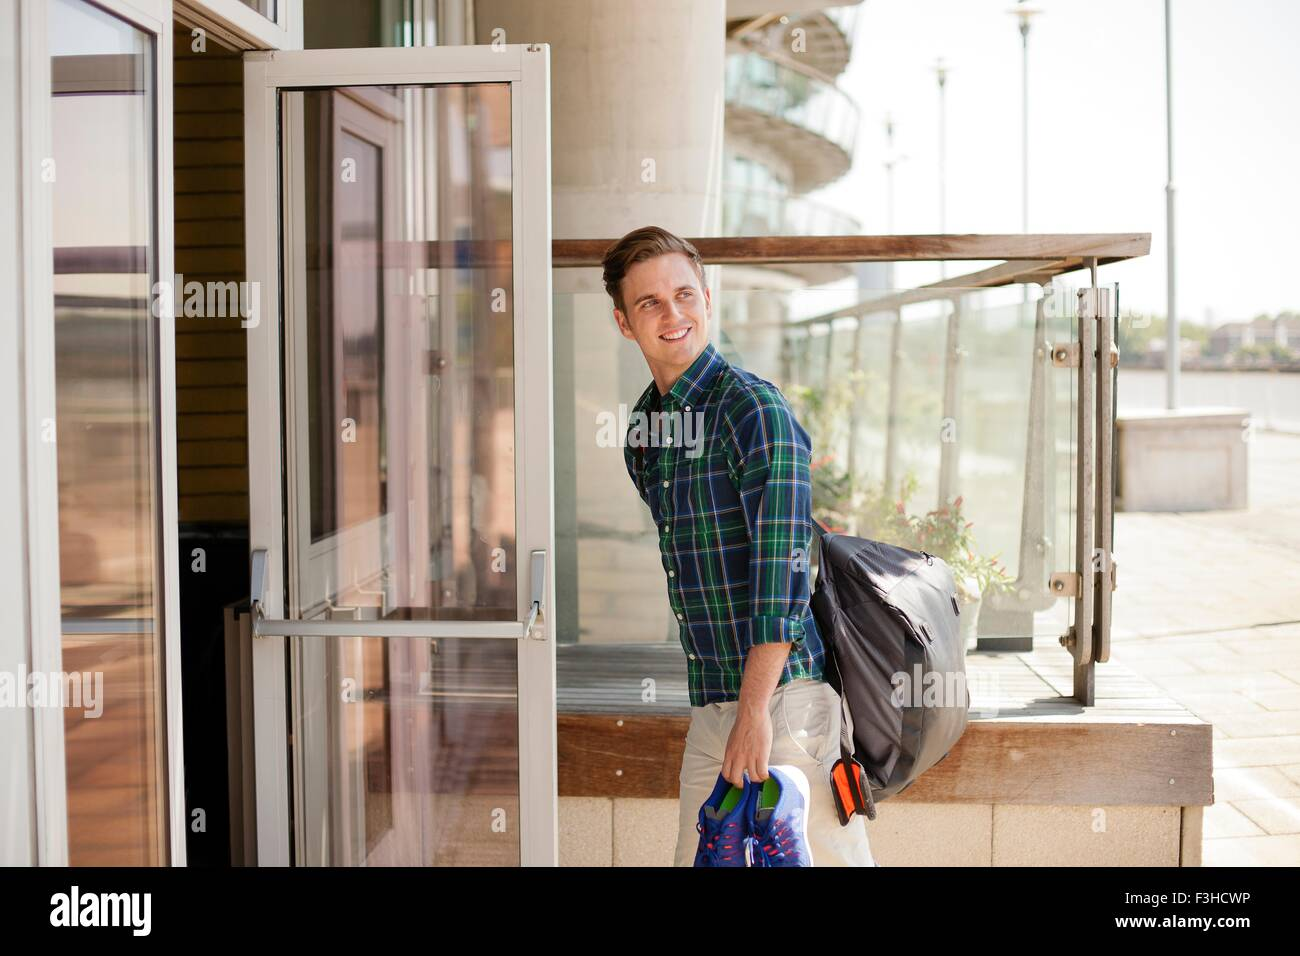 Homme entrant centre sportif, Wapping, Londres Photo Stock